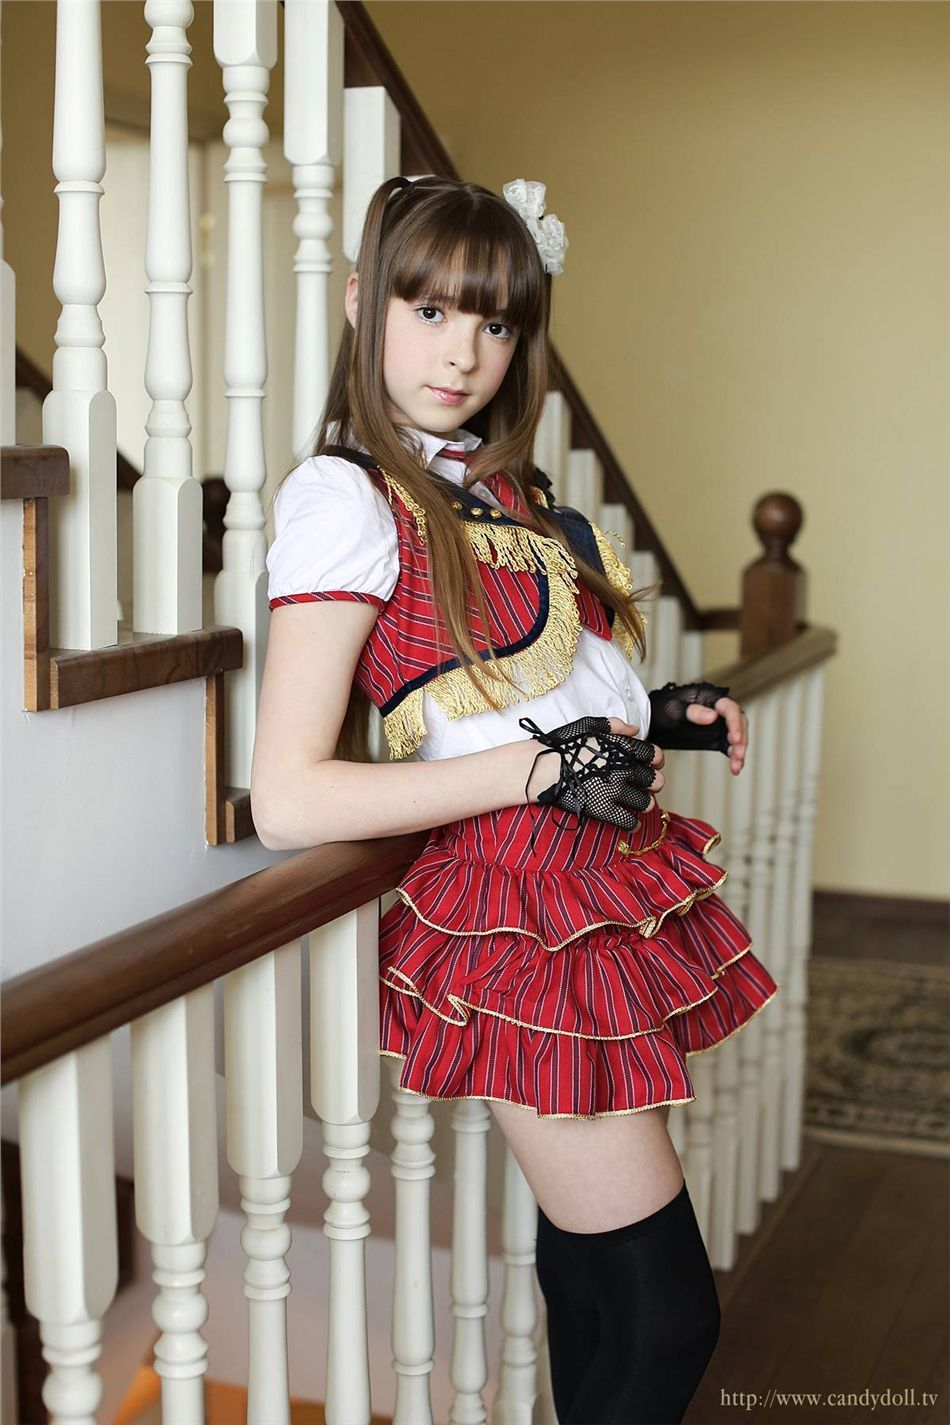 Candydoll Tv Eva R 51 Sets 30 Videos Updated Page 6   Dog